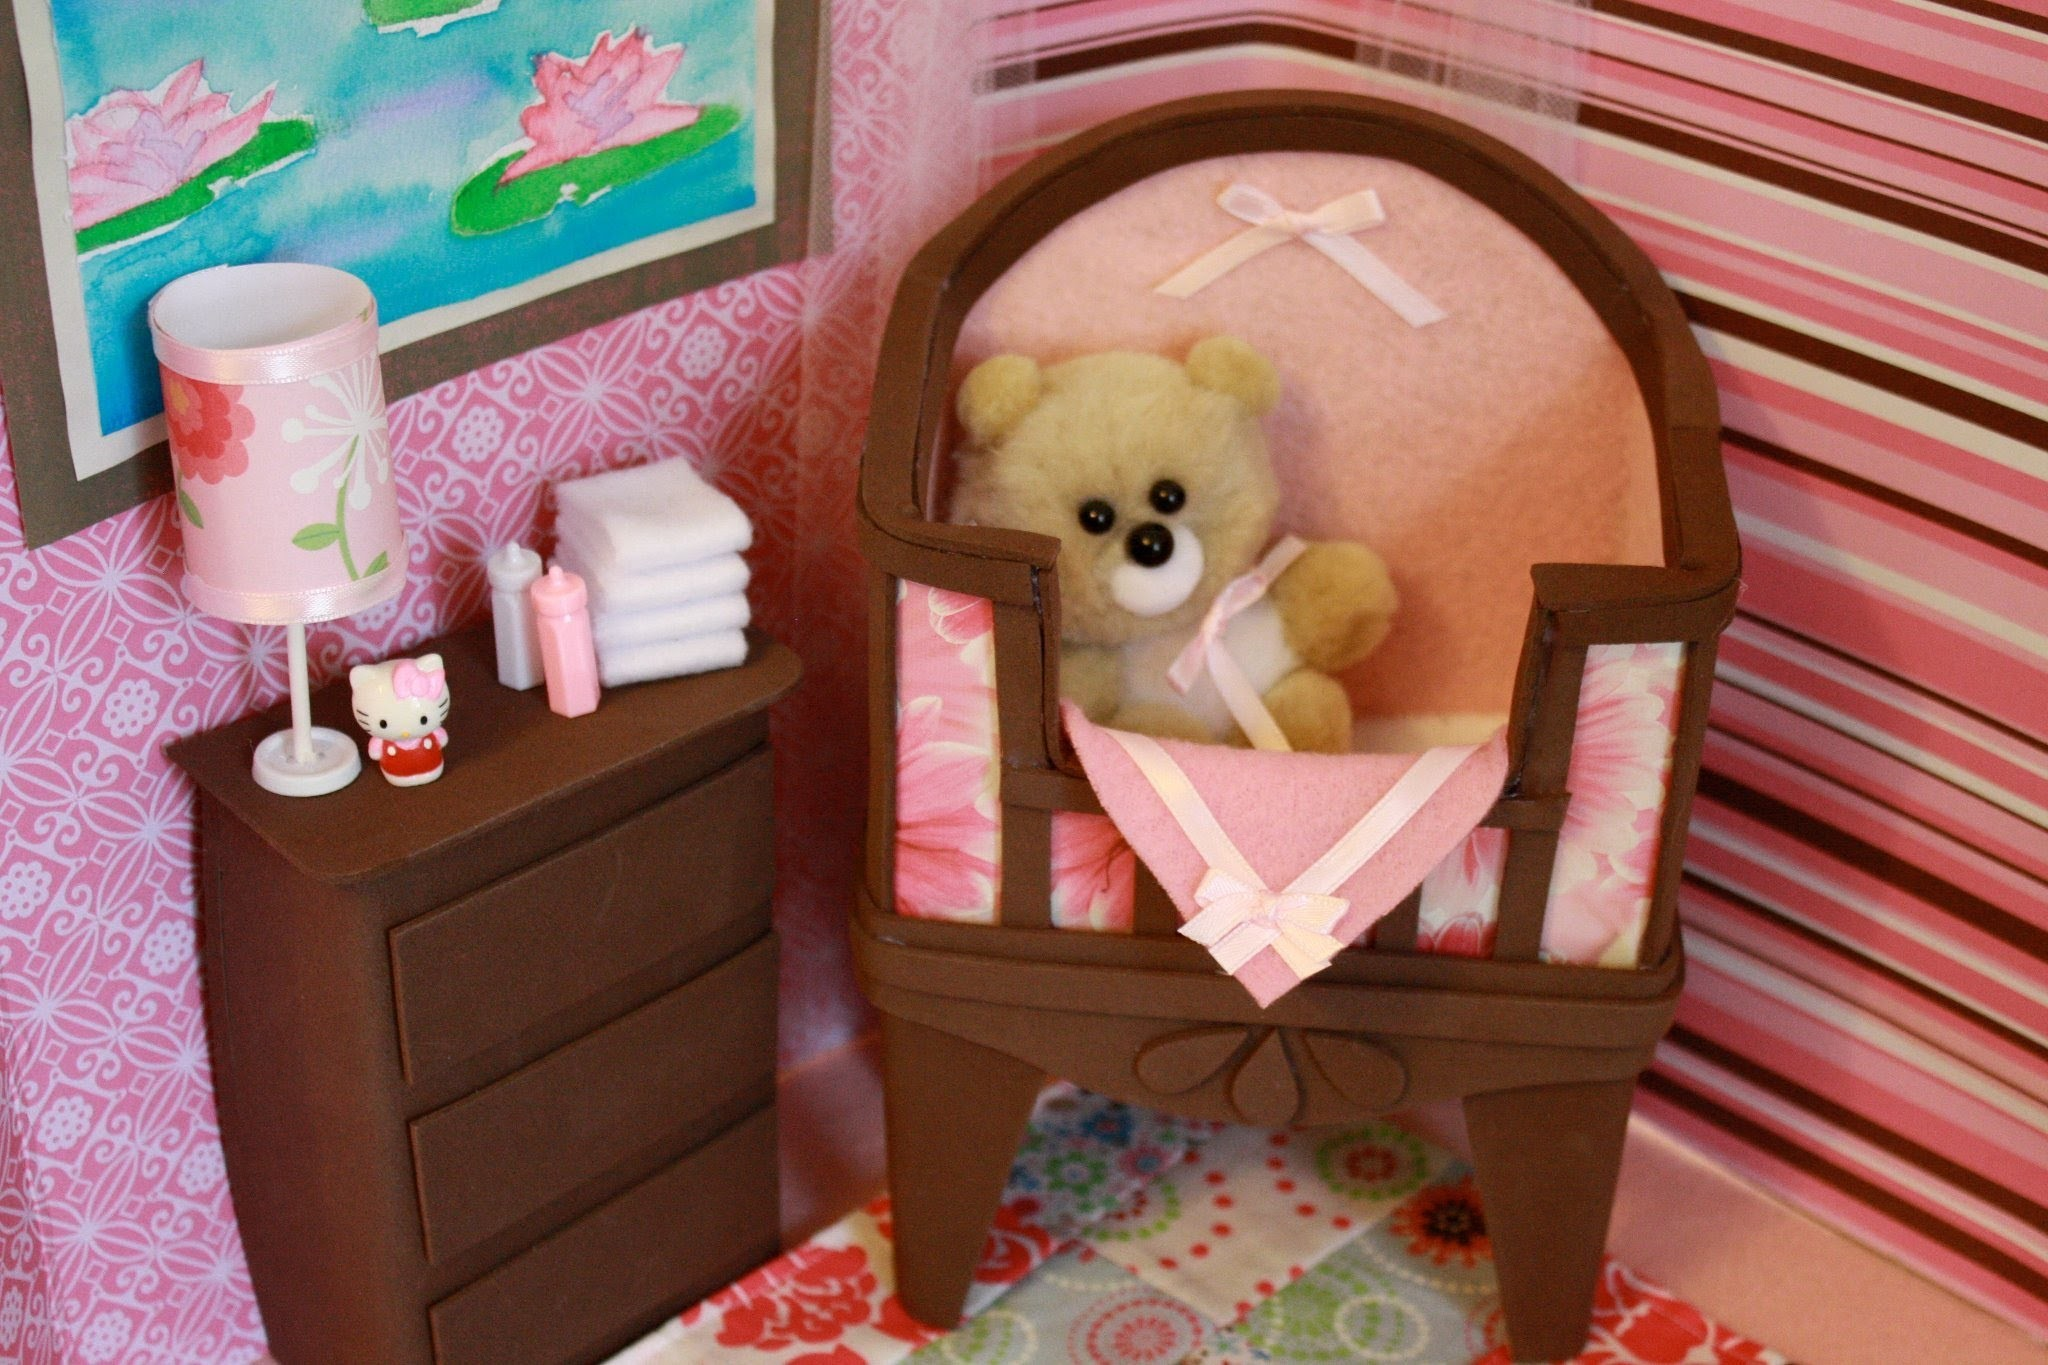 How to Make a Doll Baby Crib with Bonus Easter Project - Doll Crafts